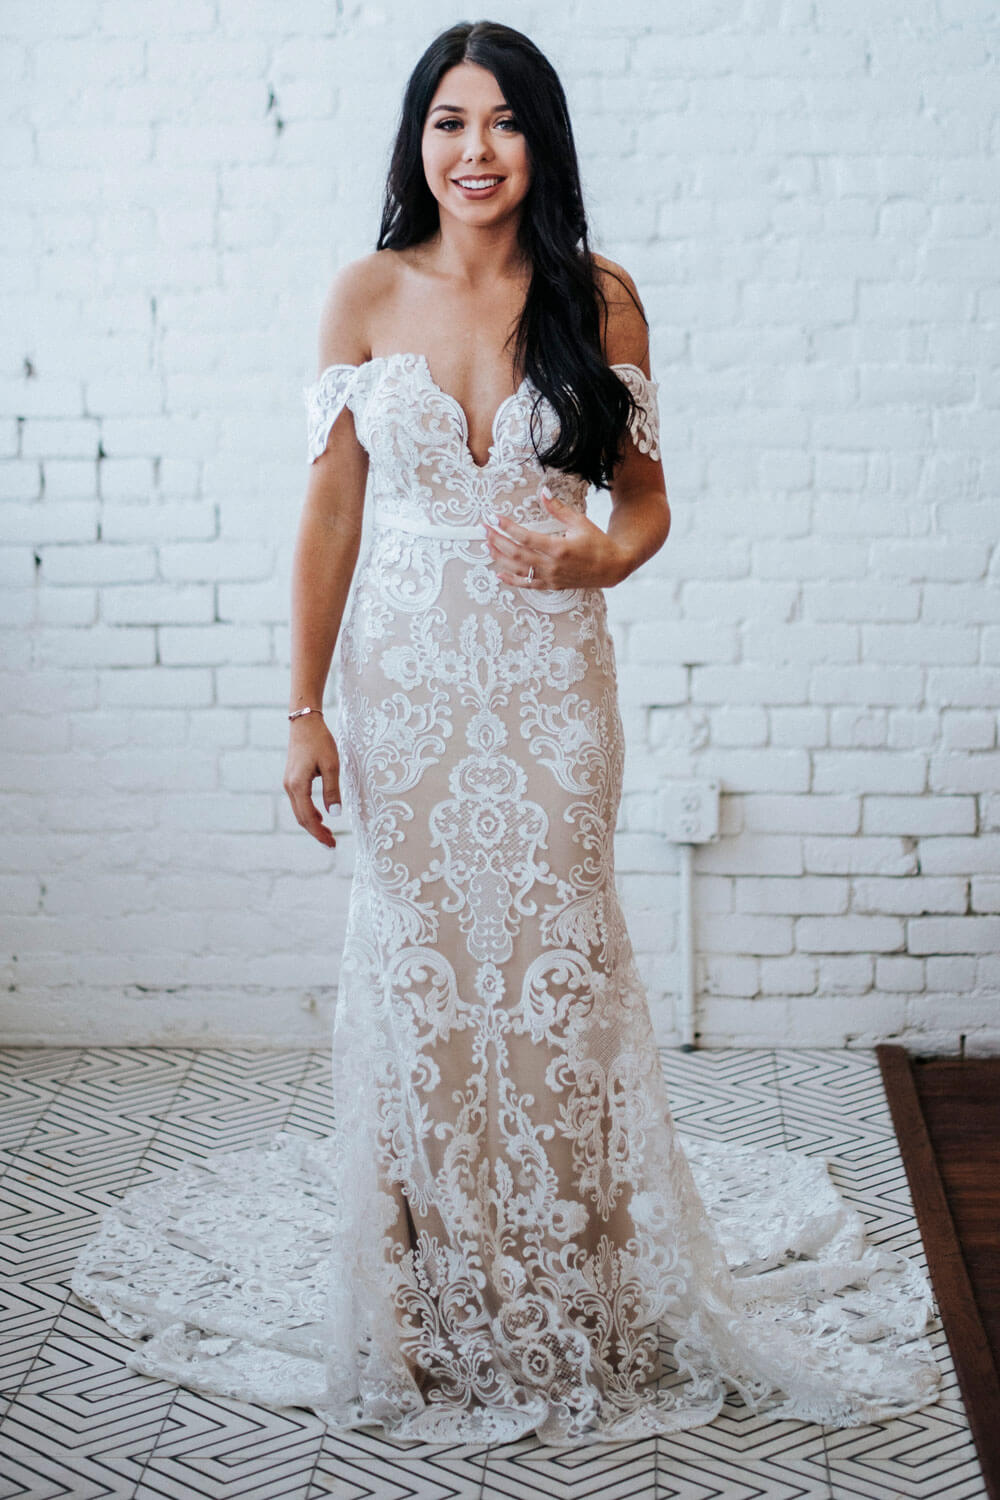 Wednesday March 13 2019: Pale Lilac Wedding Dress At Reisefeber.org